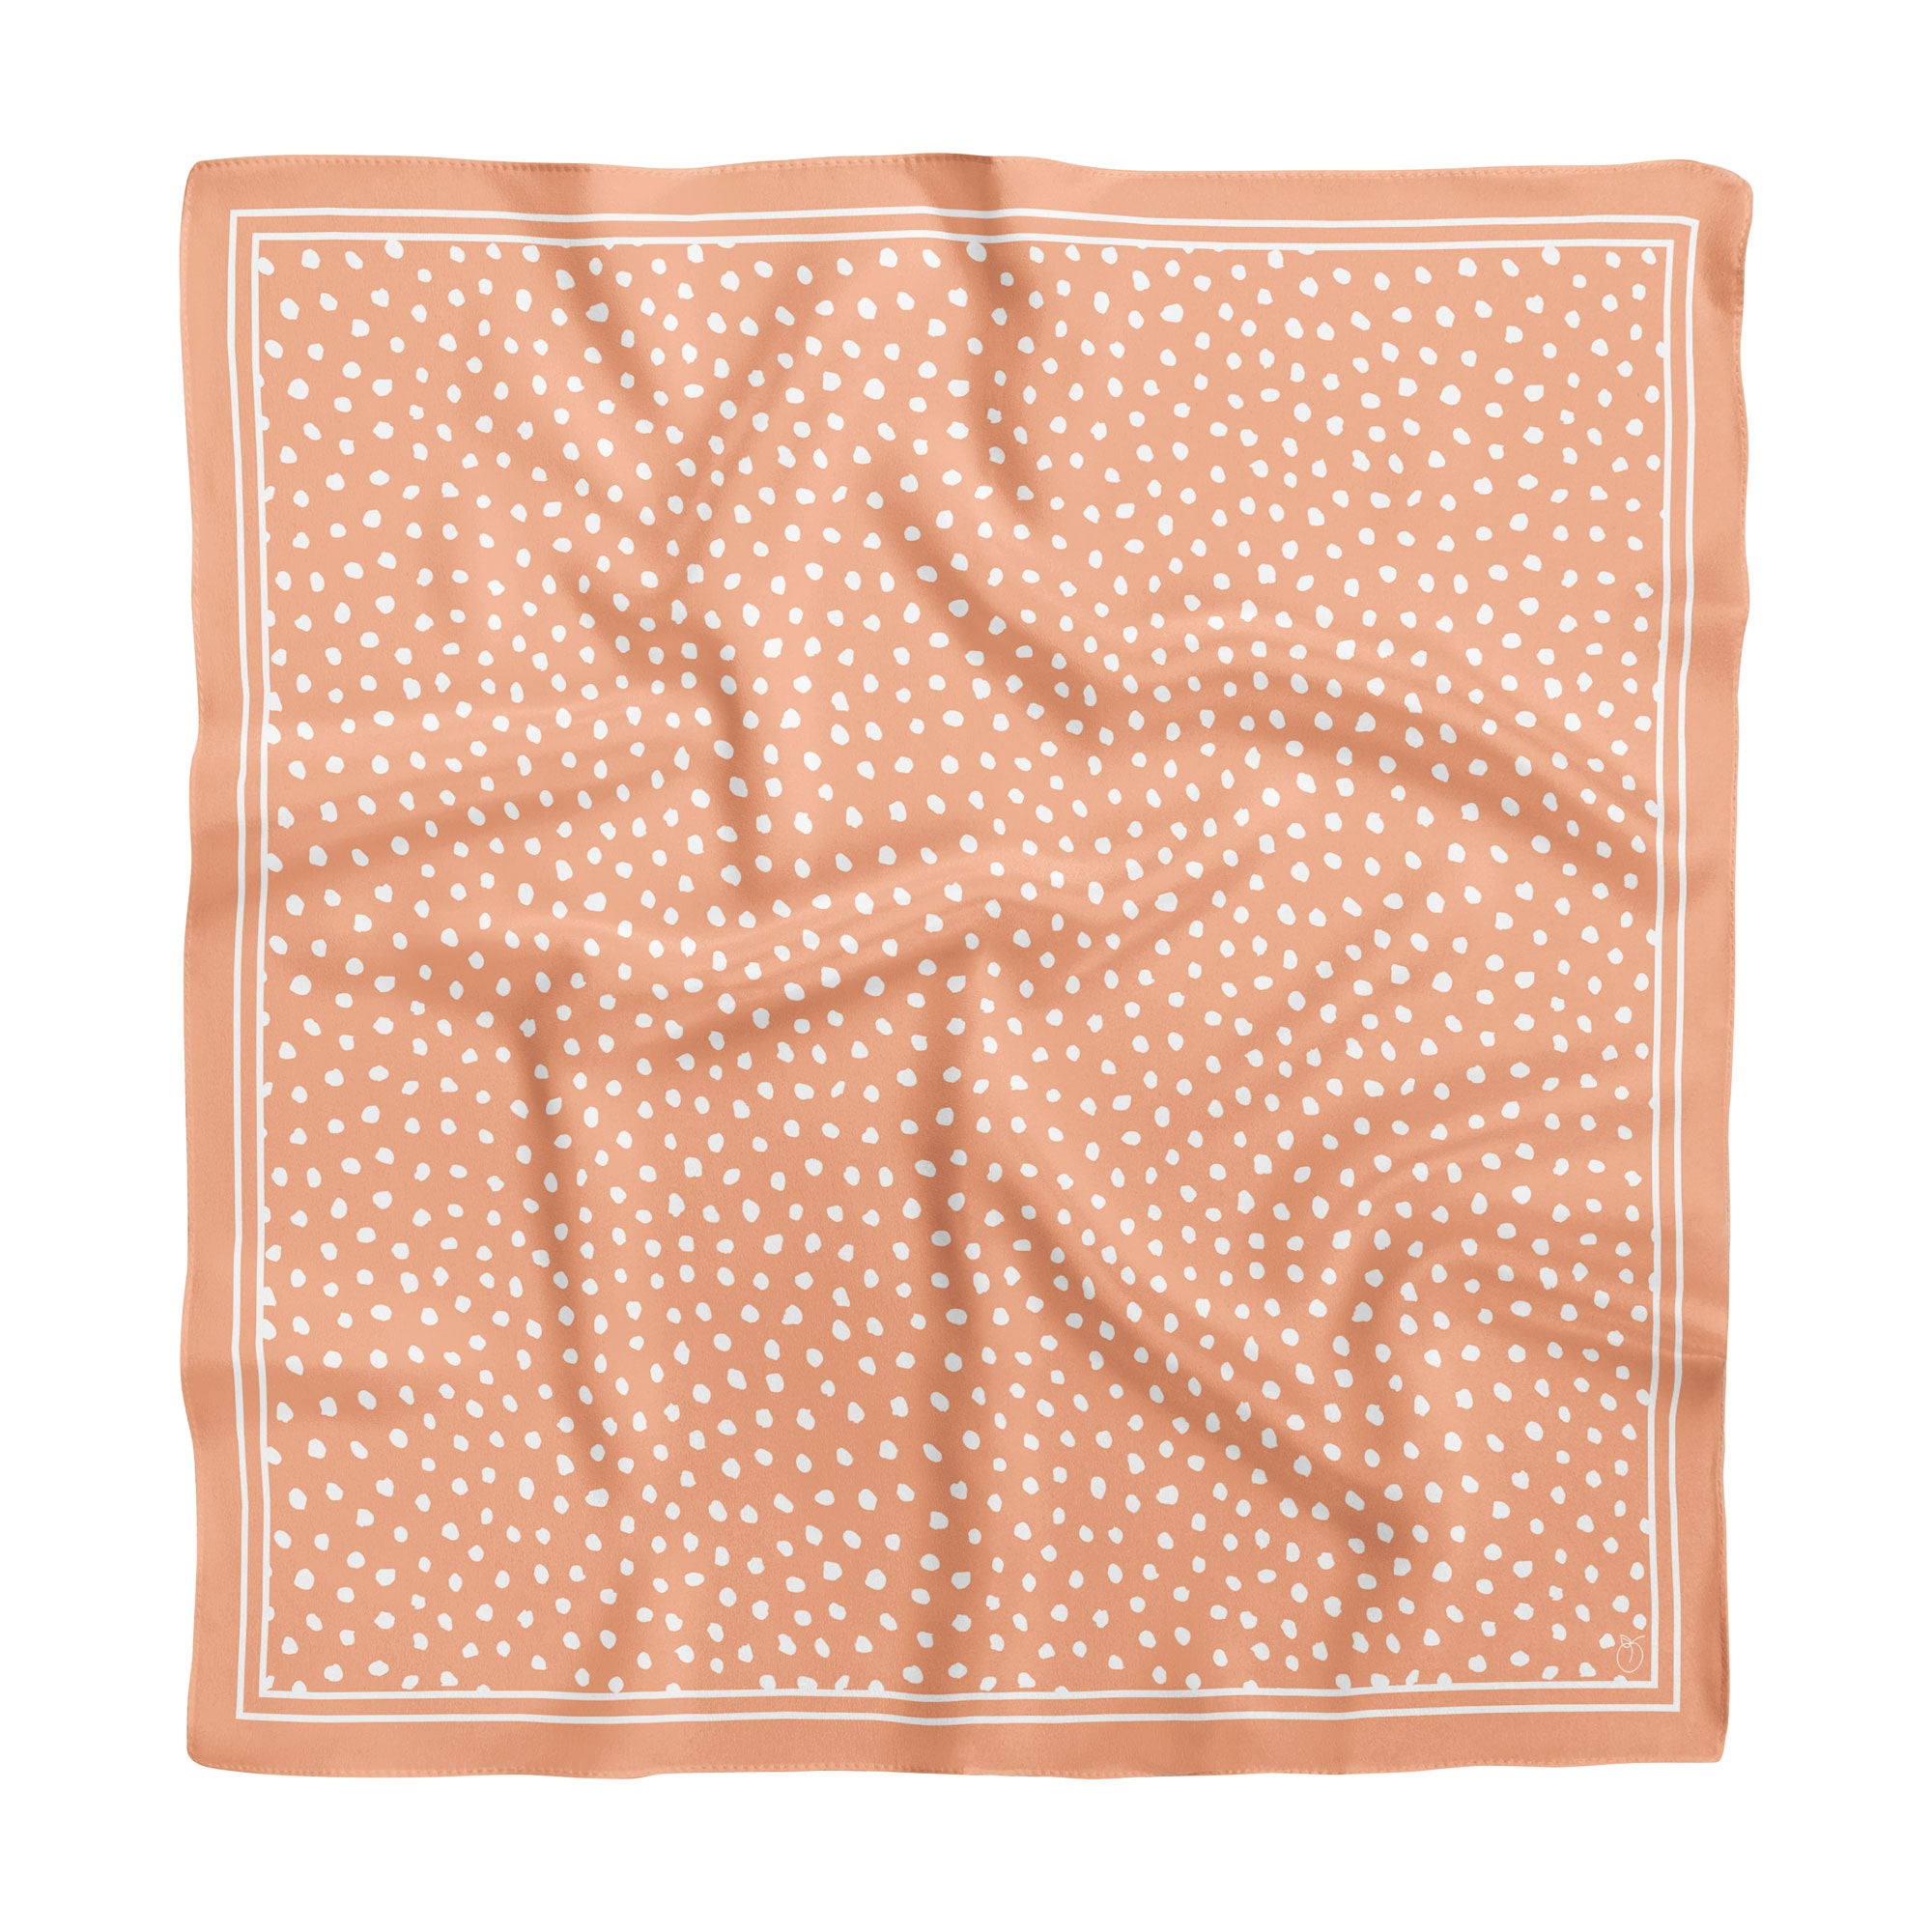 Peach Spot On Classic Square Silk Scarf